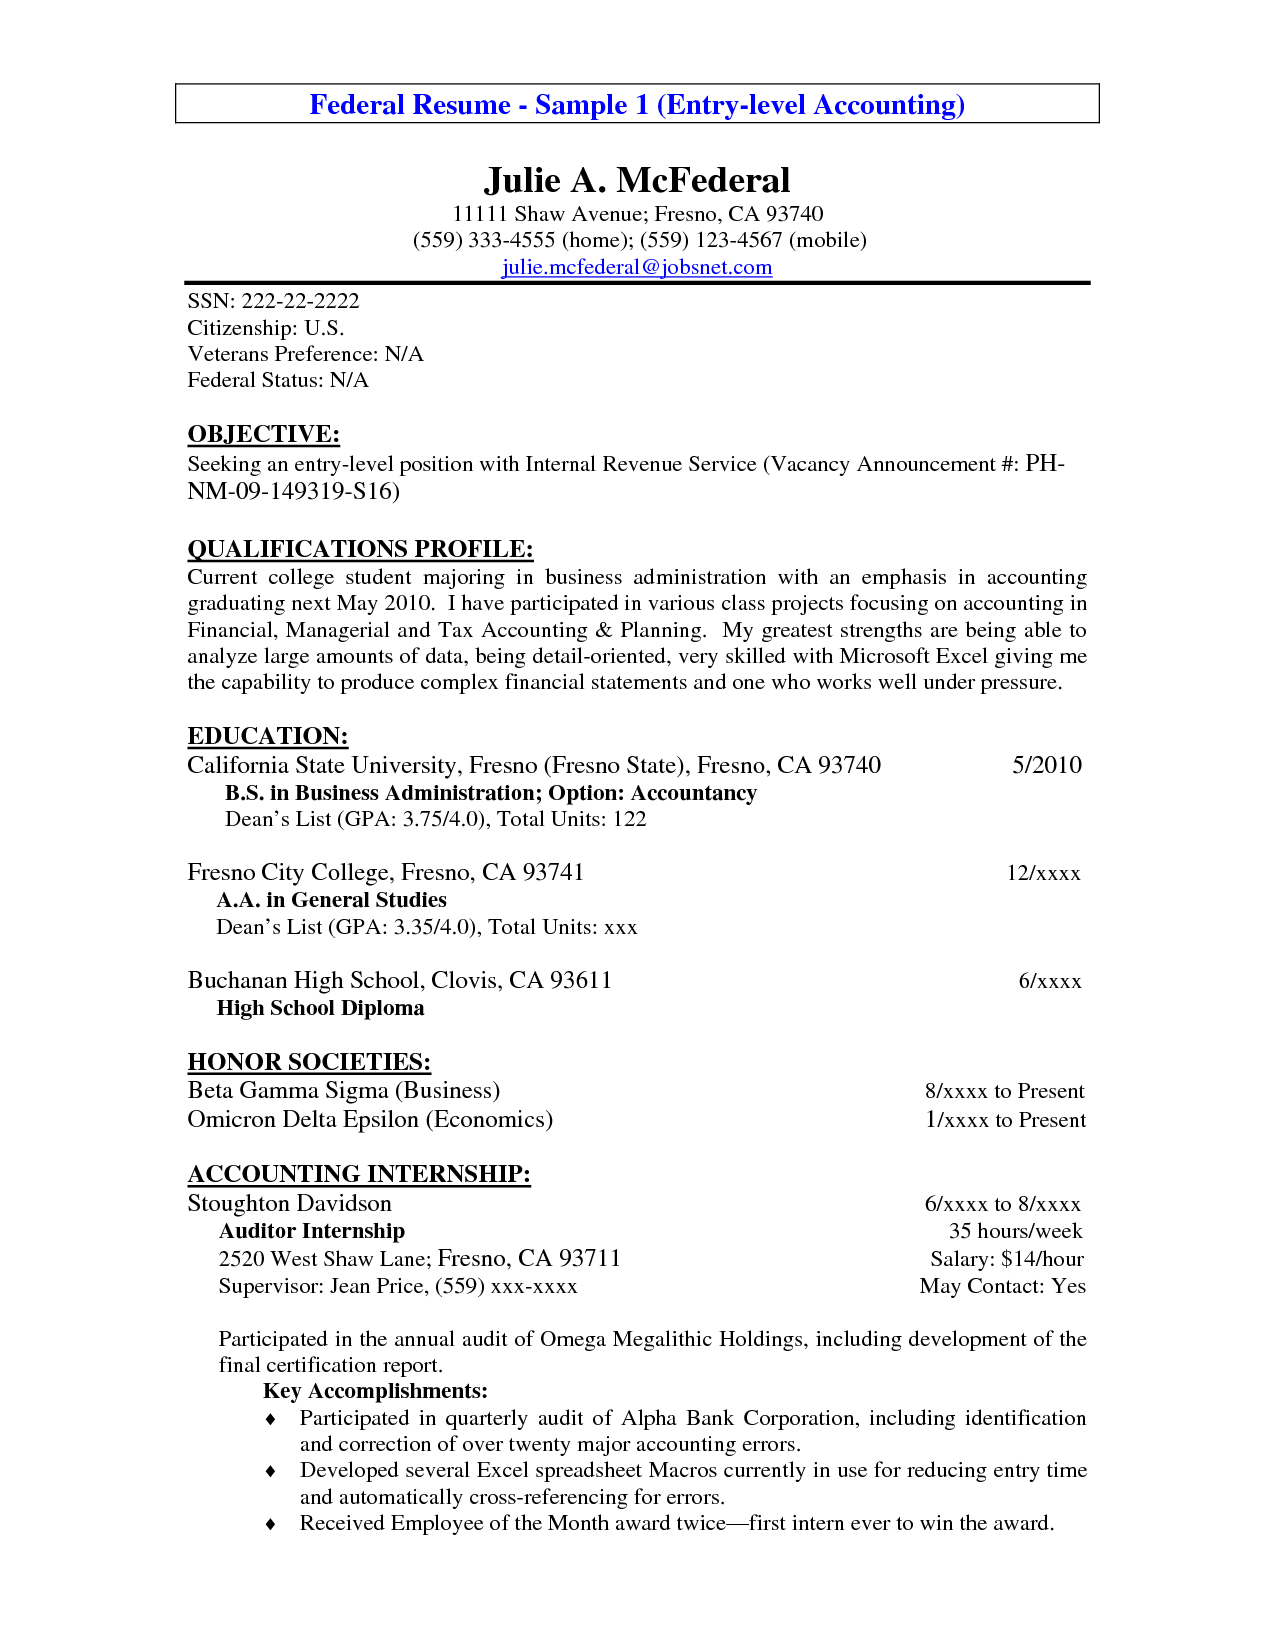 Entry Level Resume Sample Objective Examples Of A Resume Objective  Objective Resume Examples.  Objective In A Resume Examples